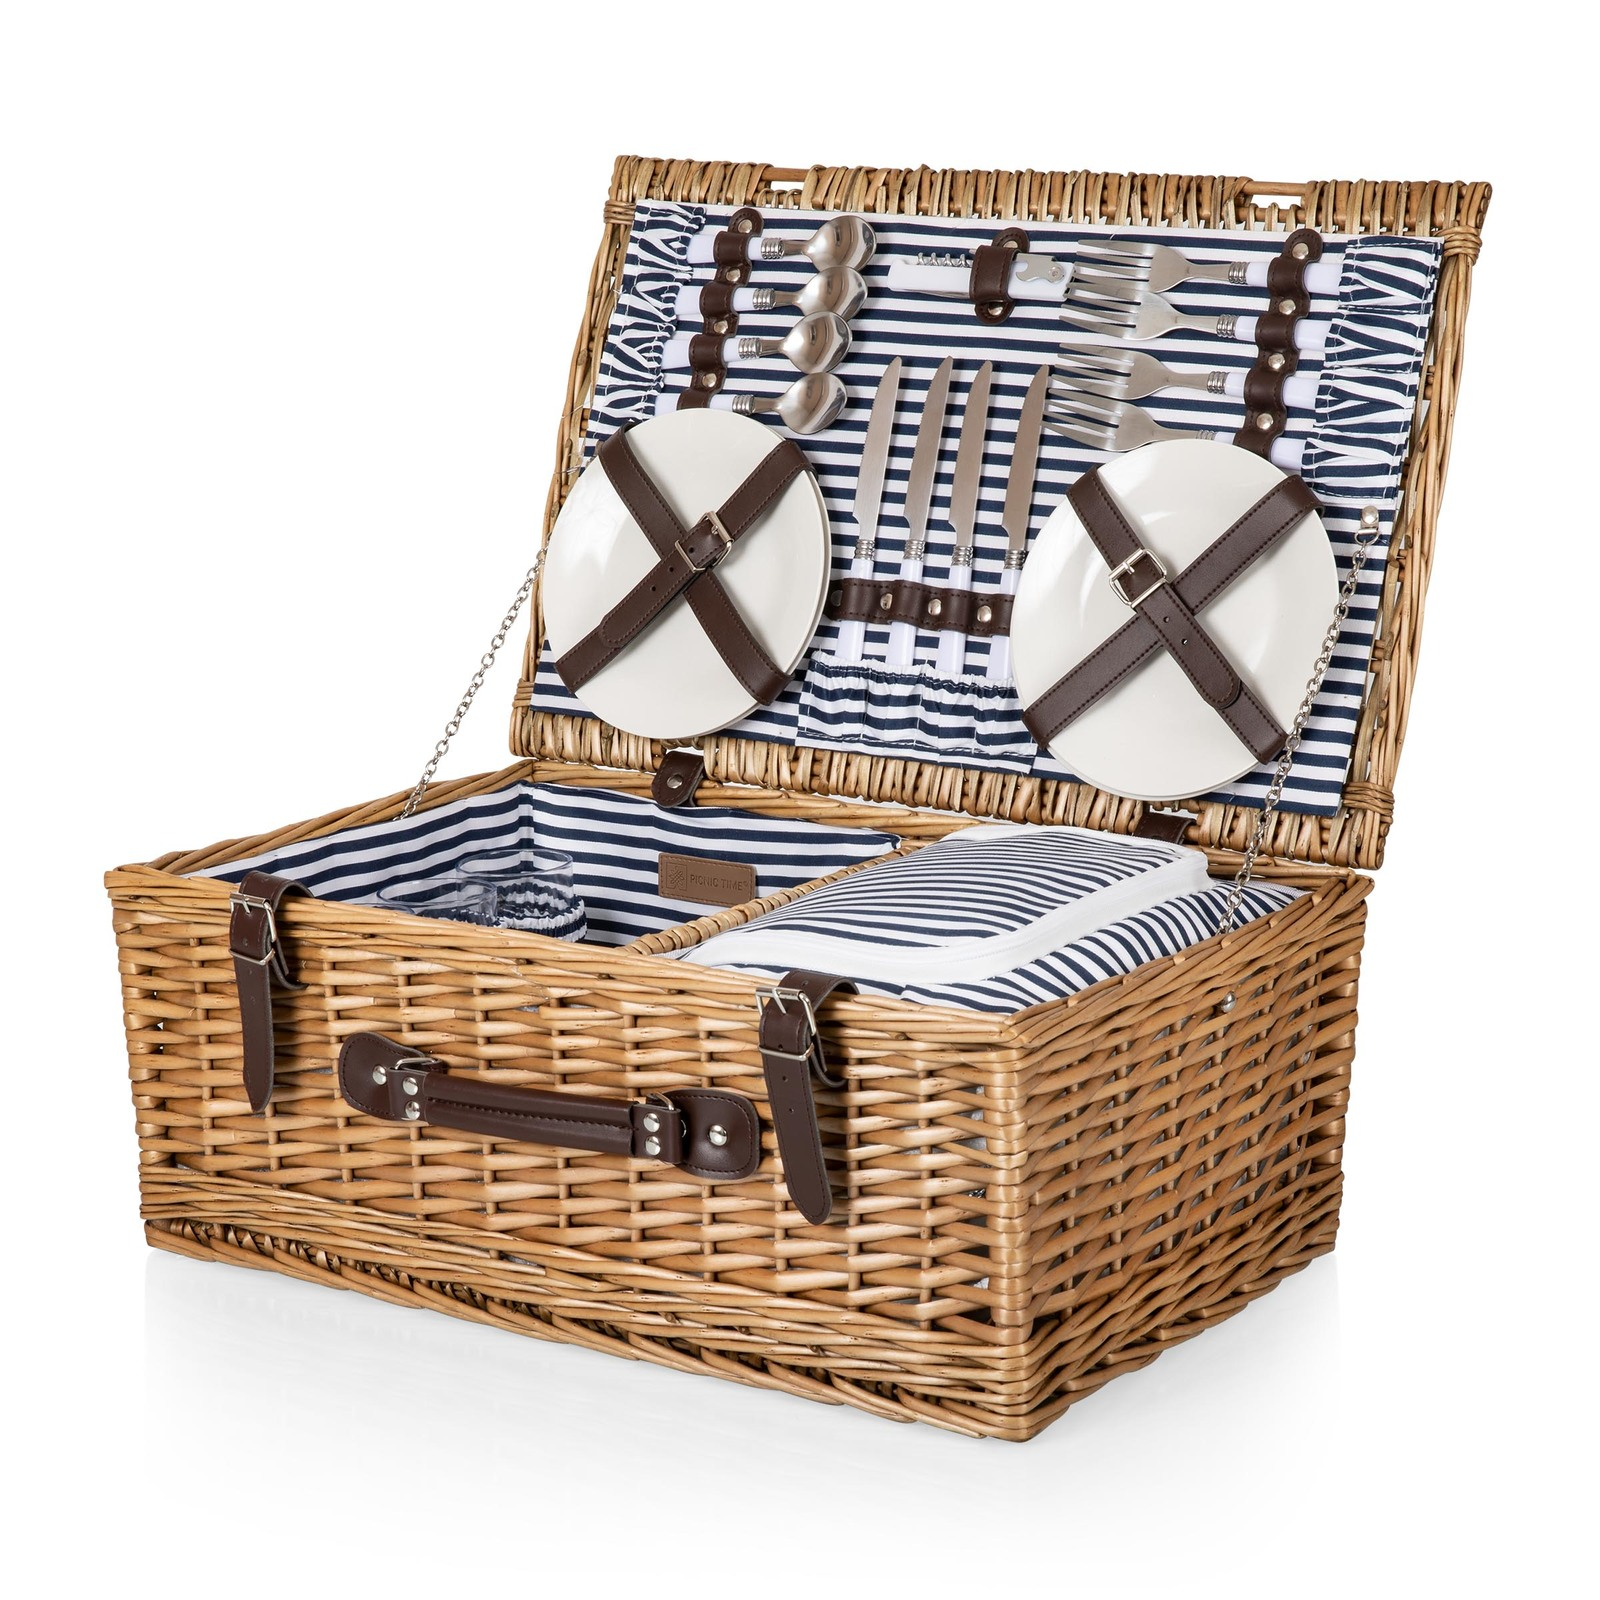 Picnic Time: Belmont Picnic Basket & Cooler (Navy and White Stripe) image